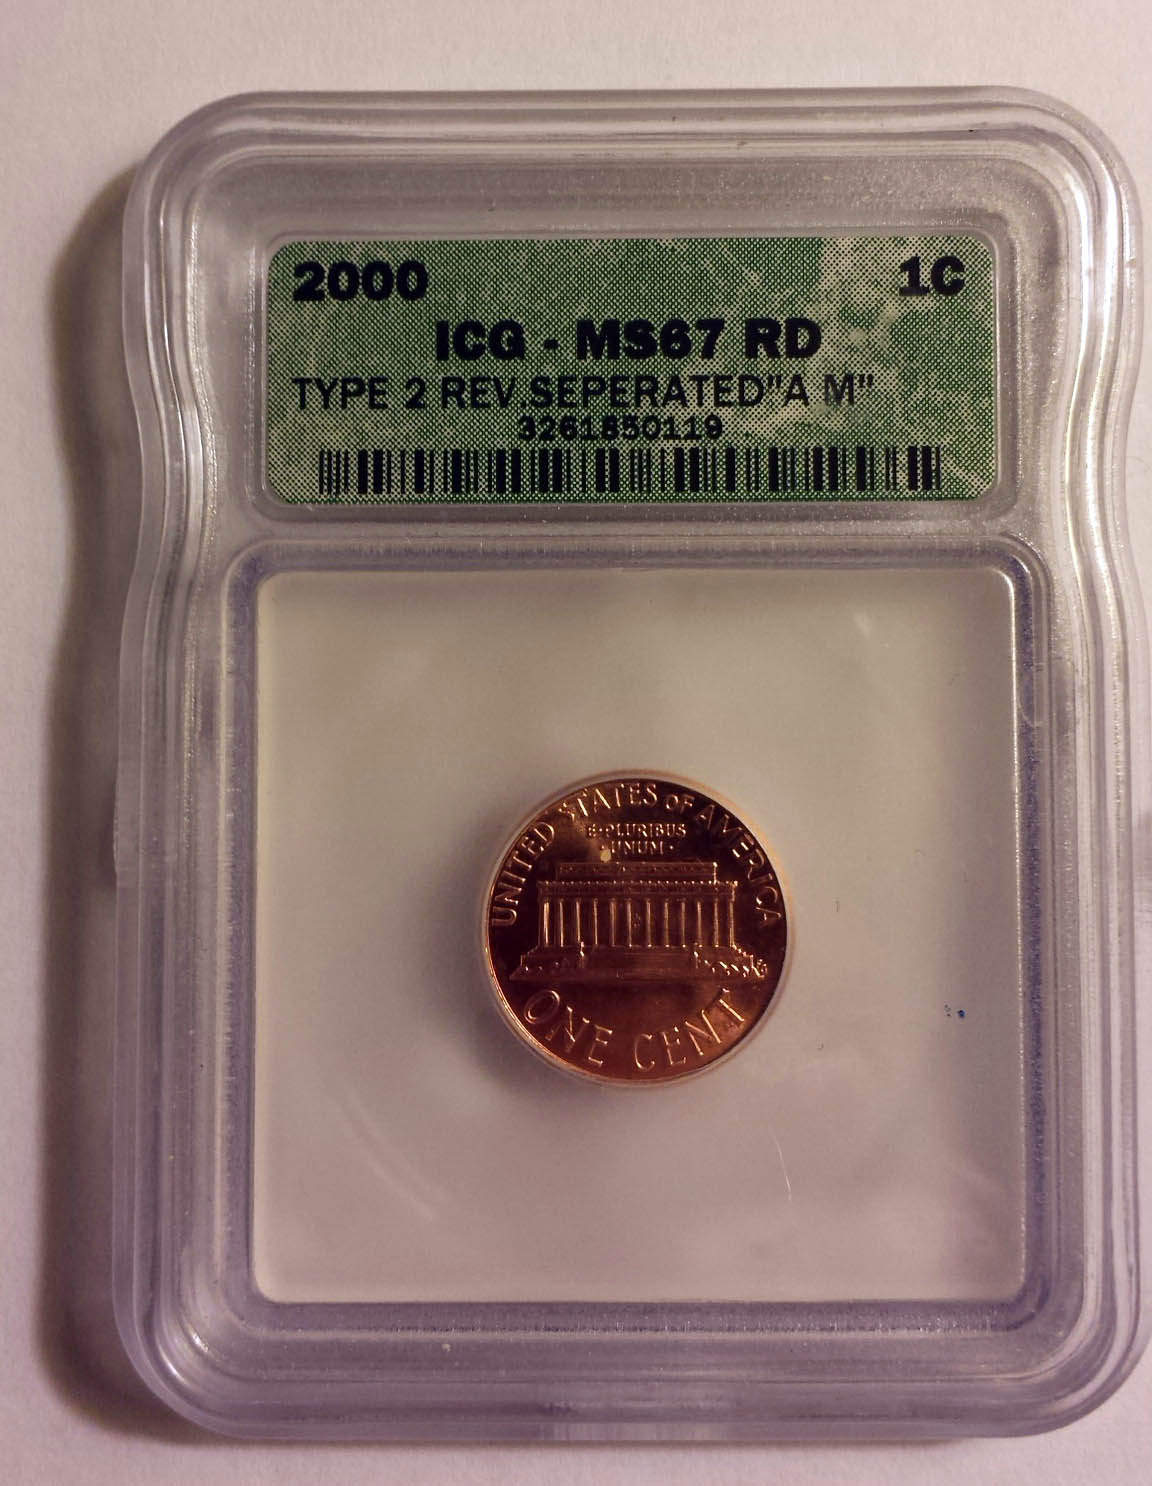 "The coin looks perfectly graded and attributed, but ""seperated"" is a misspelling."